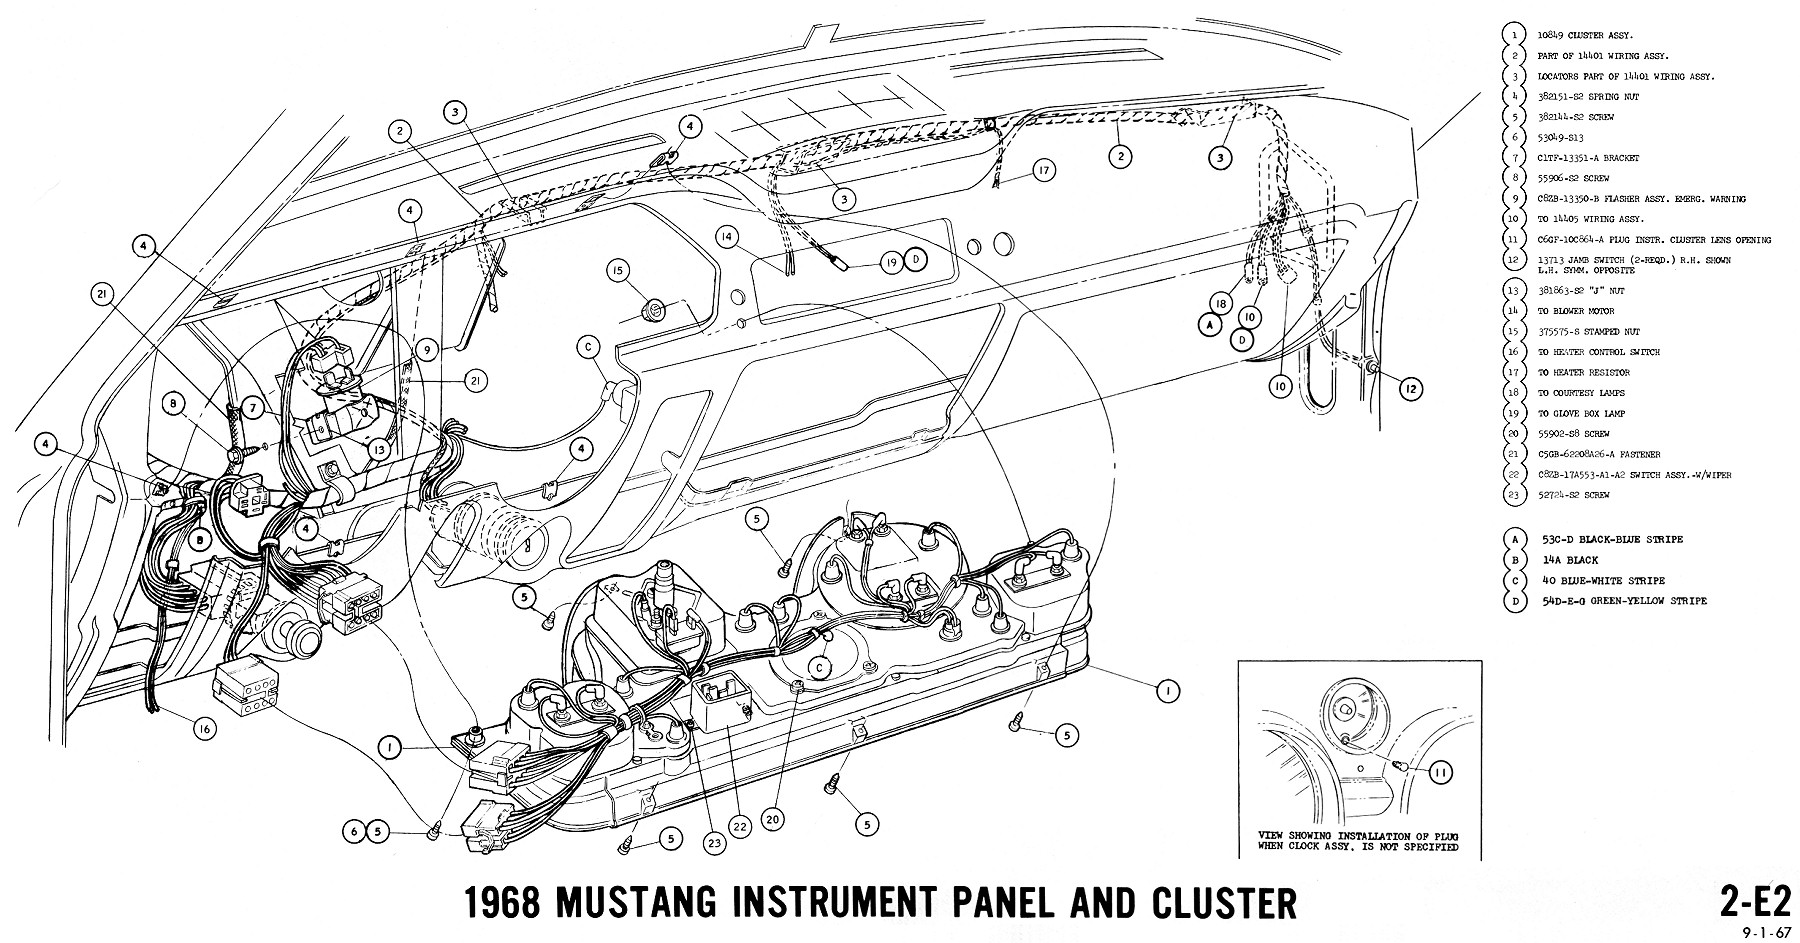 1968 mustang wiring diagram instruments 2 1968 mustang wiring diagrams and vacuum schematics average joe 1970 mustang wiring diagram at soozxer.org